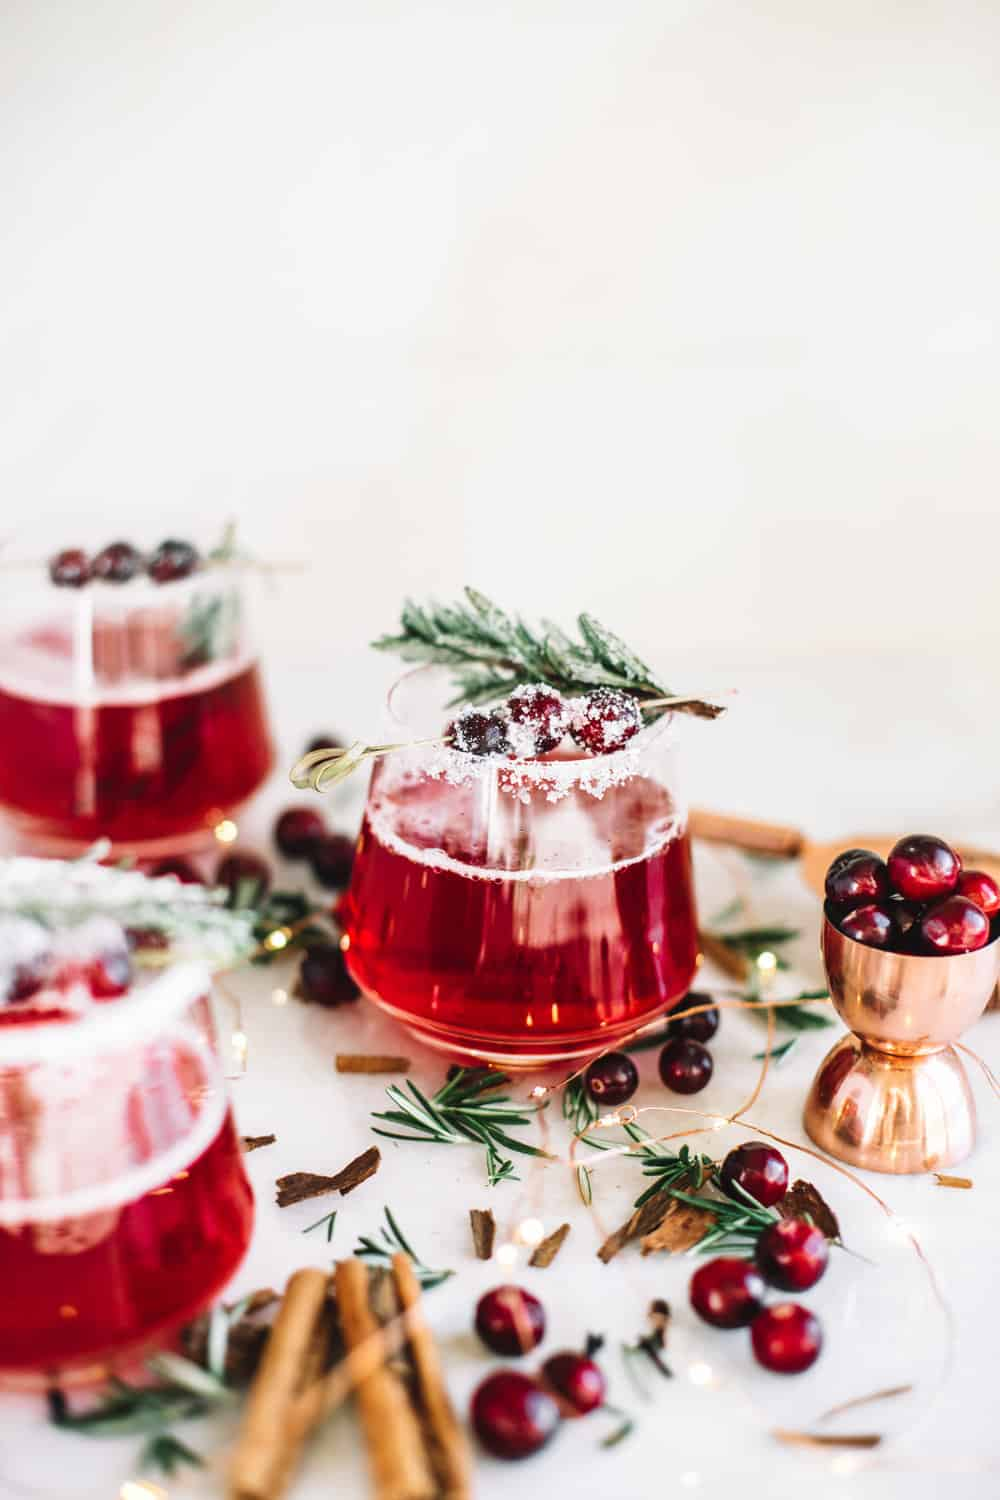 Low glass filled with a cranberry whiskey cocktails garnished with frosted cranberries and a rosemary sprig.